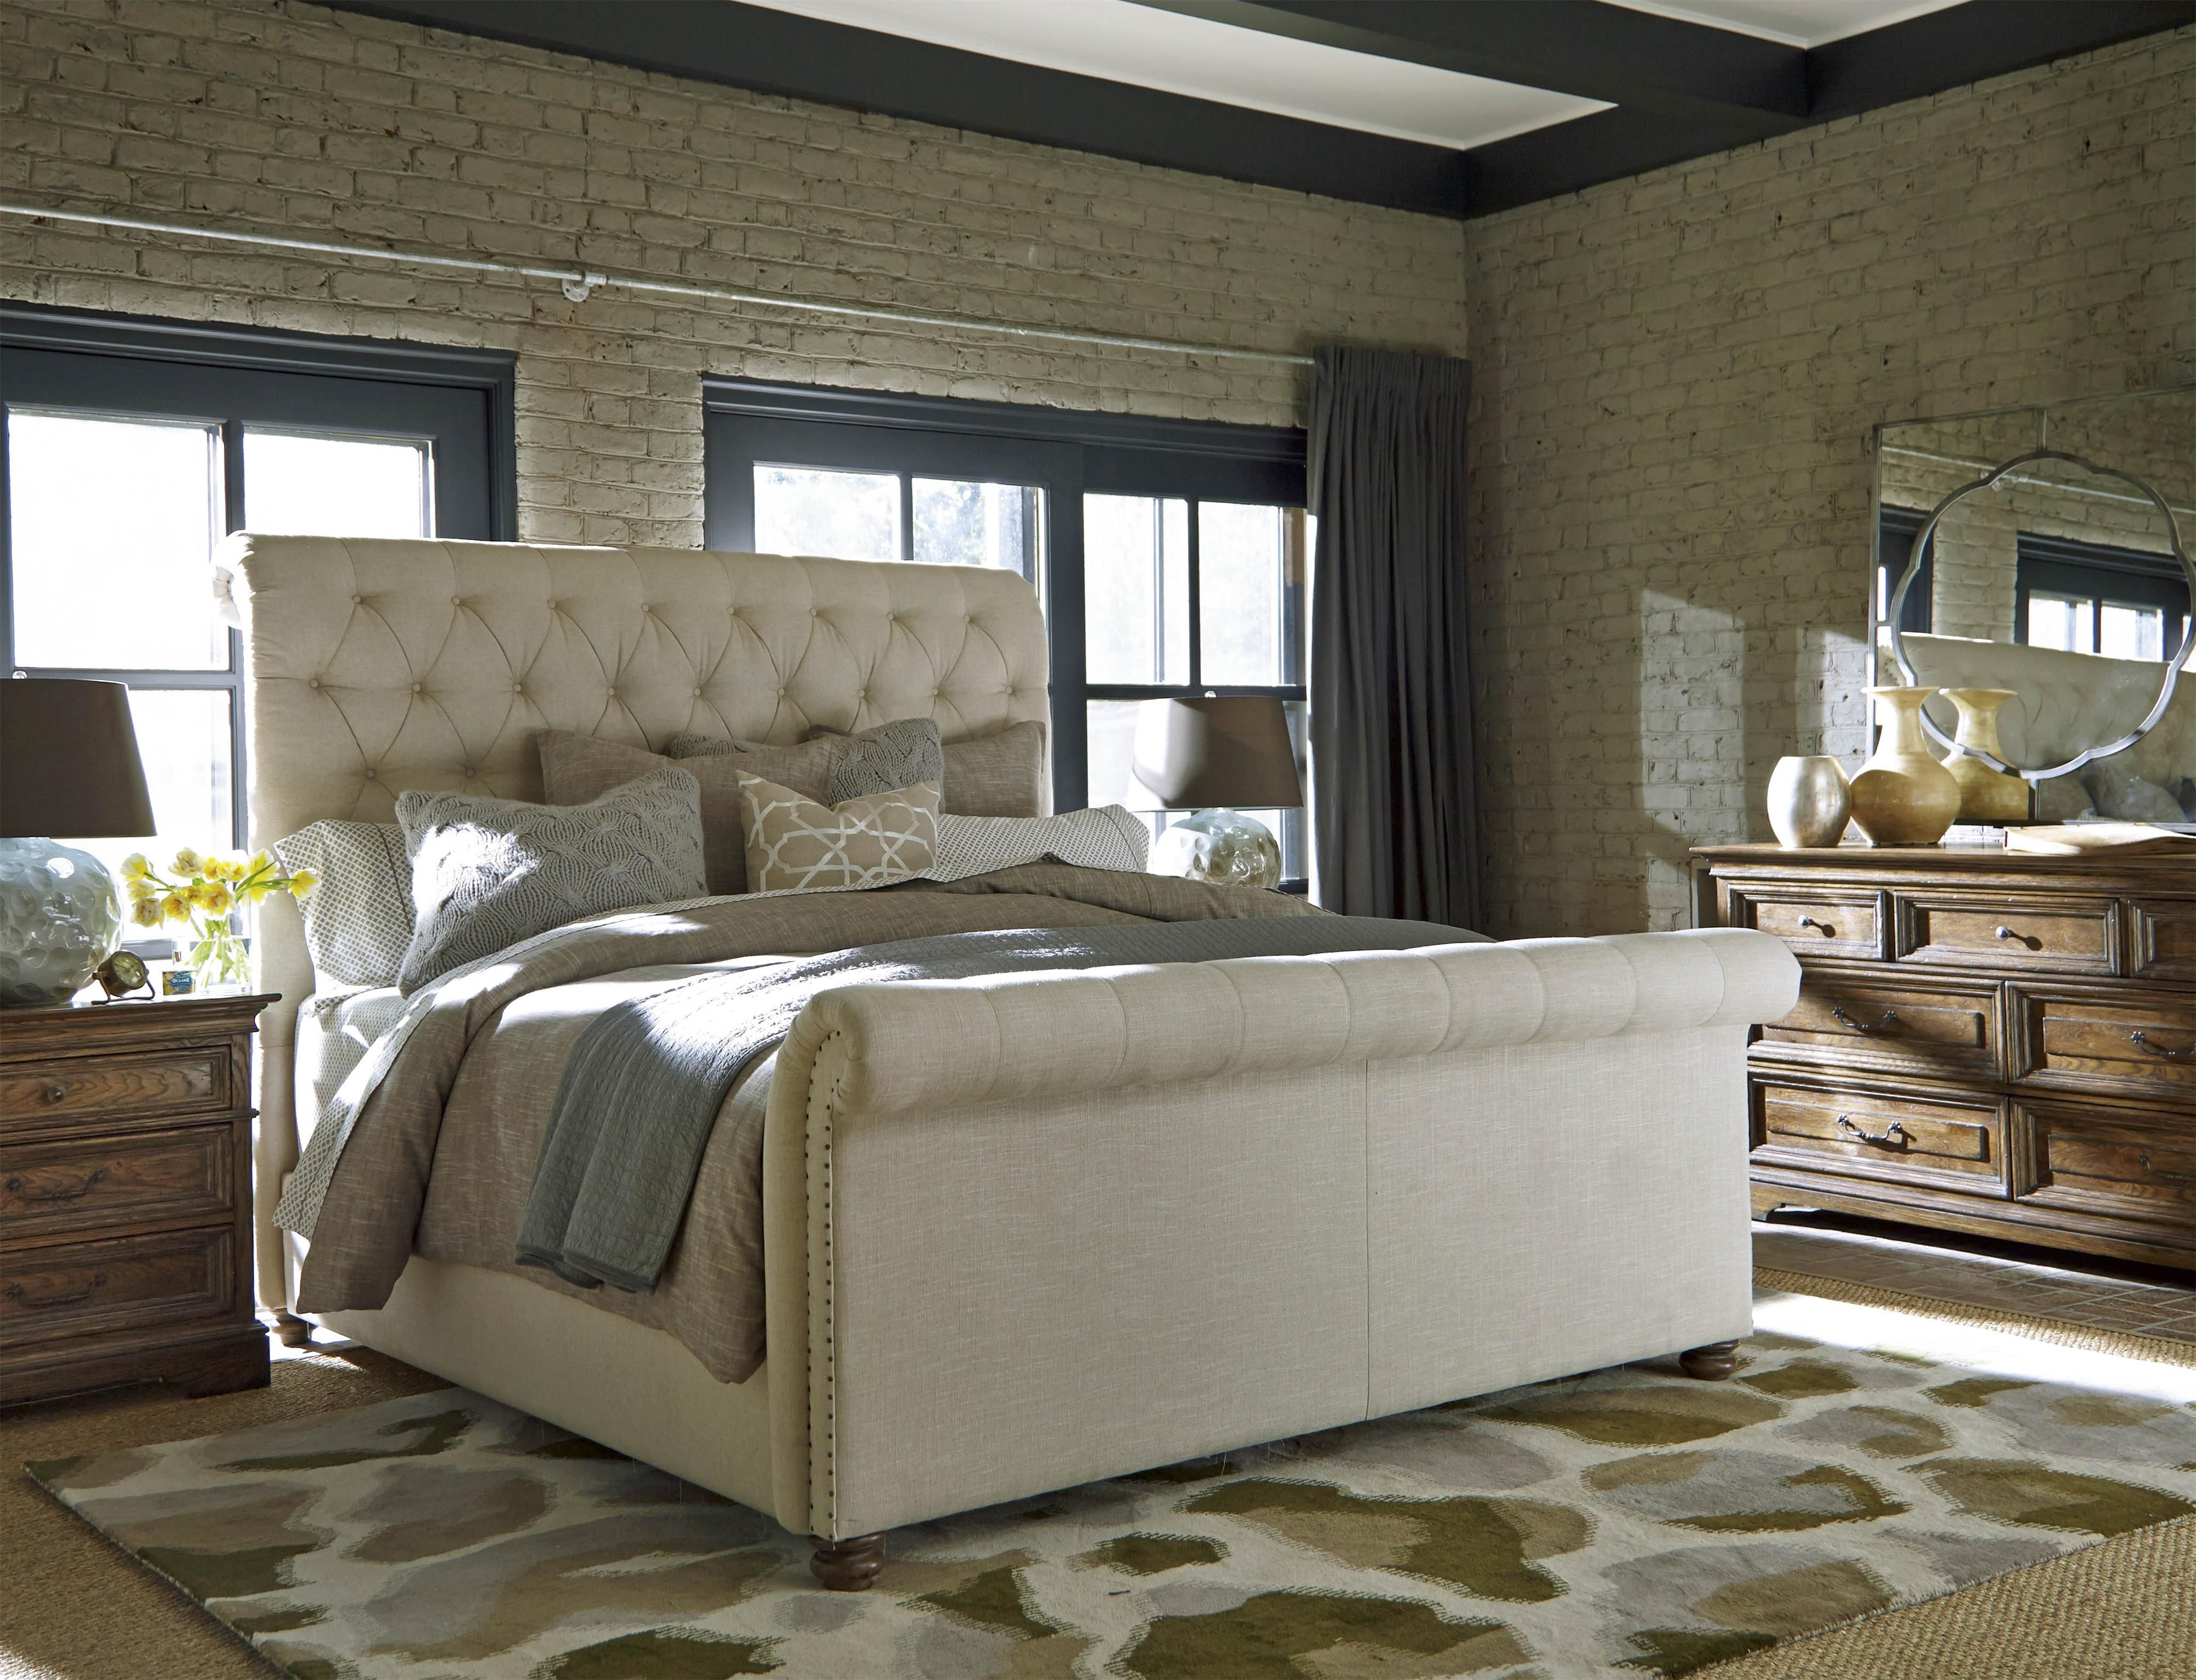 New Bohemian King Bedroom Group By Sdi7 Universal Furniture